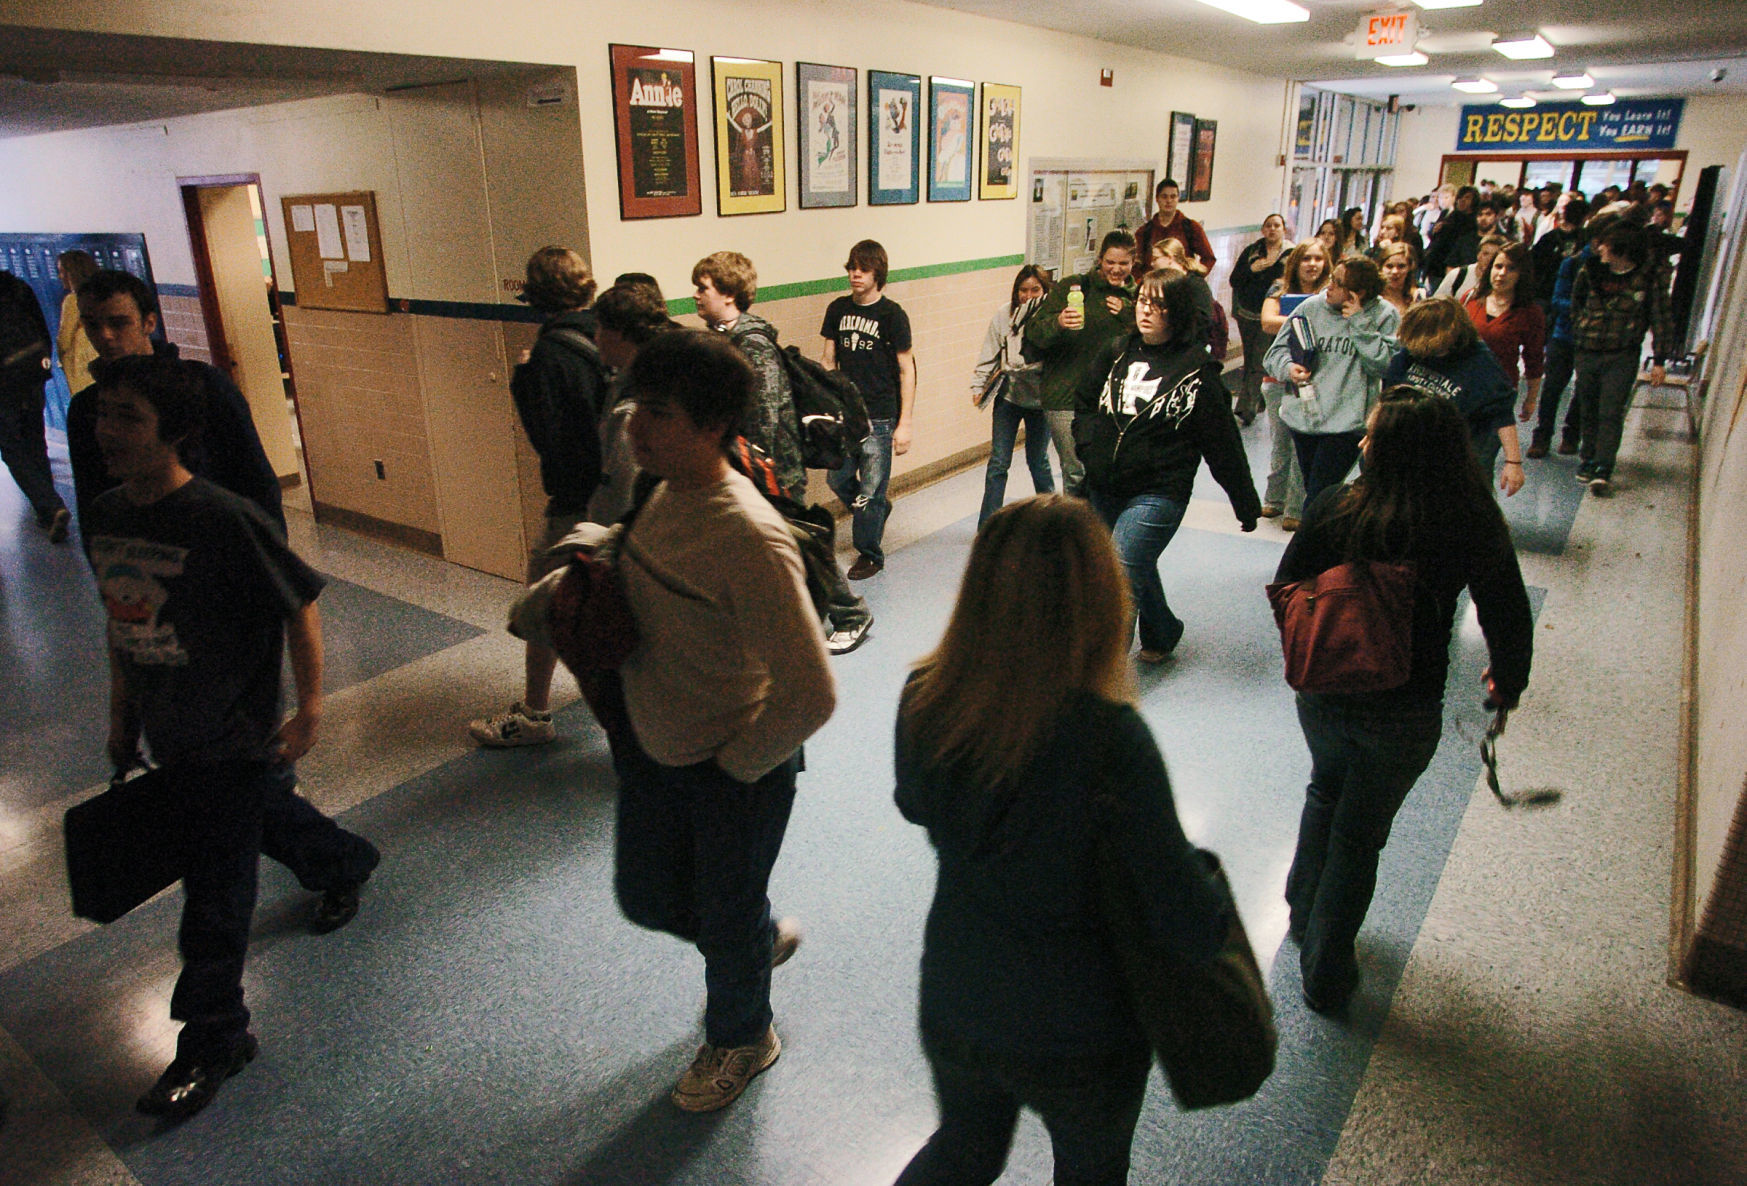 South High South Glens Falls adopts nearly